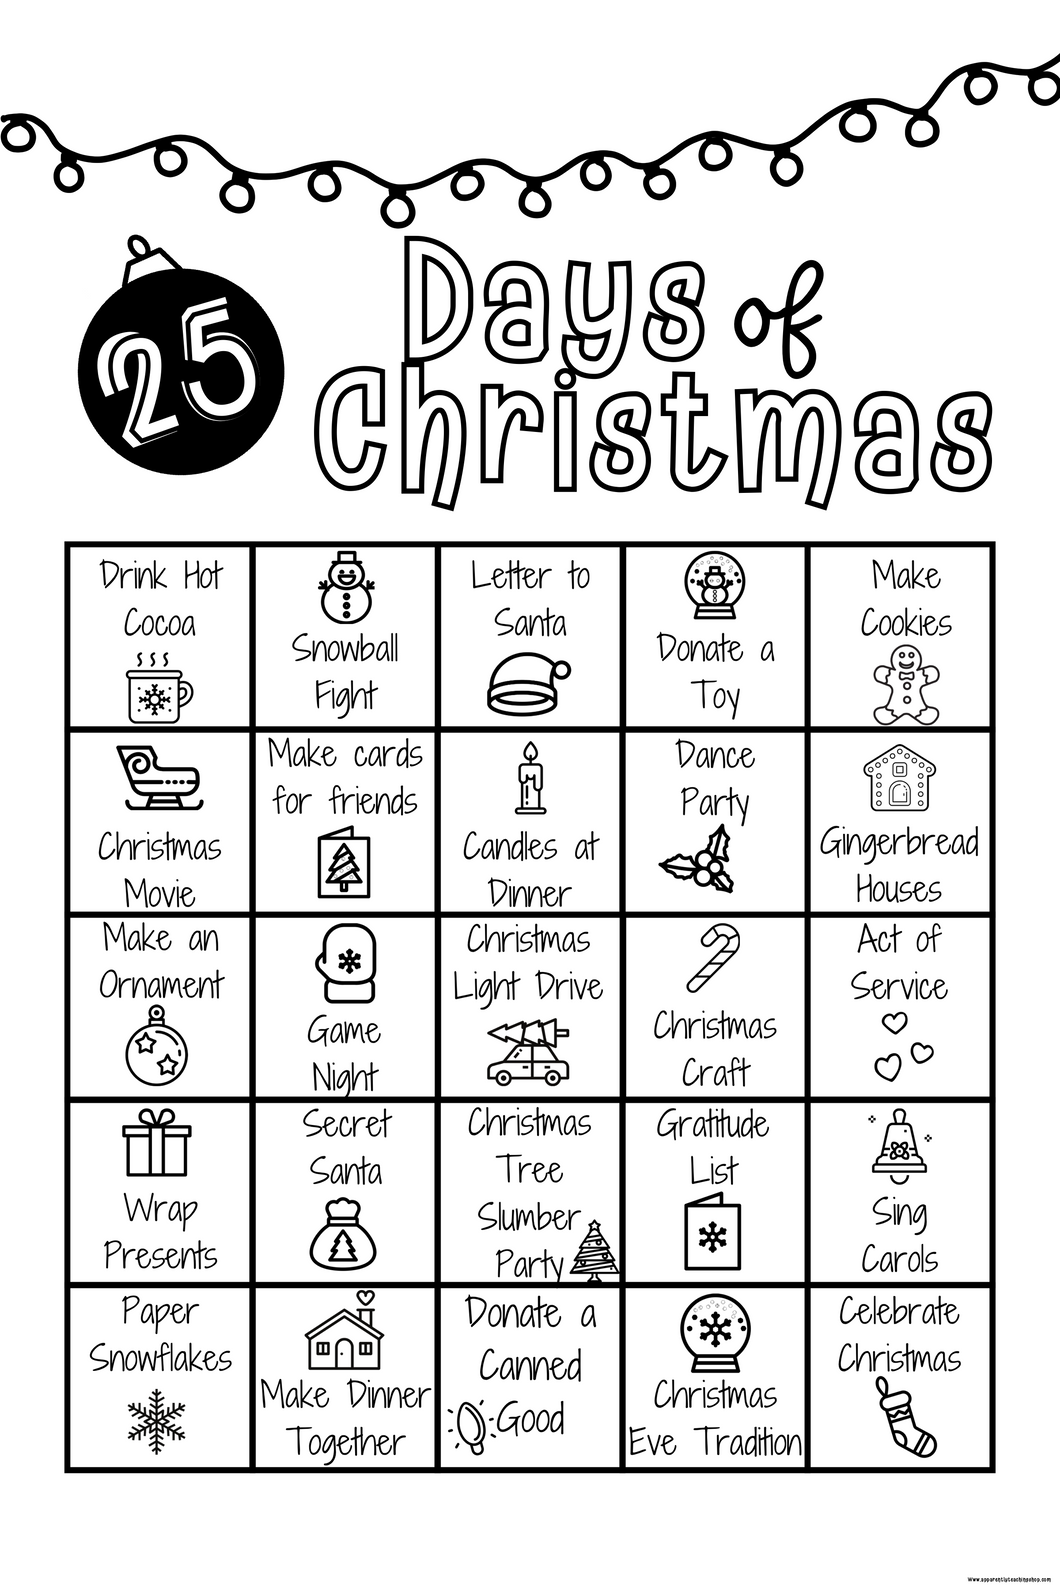 25 Days of Christmas Advent-Digital Download